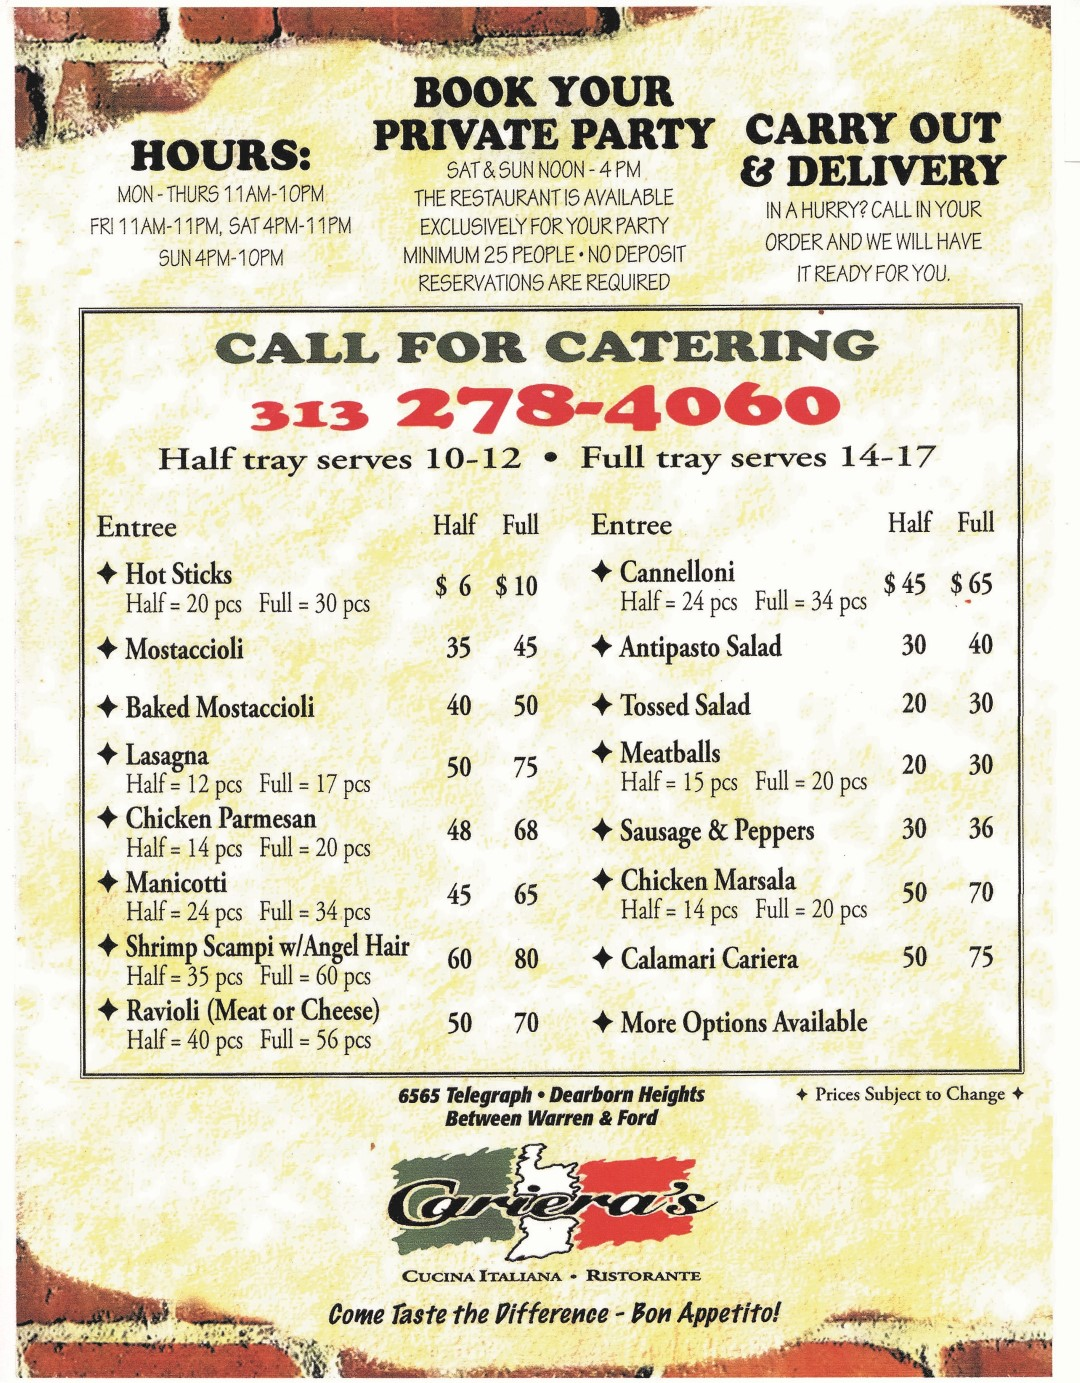 Catering Menu (Large)